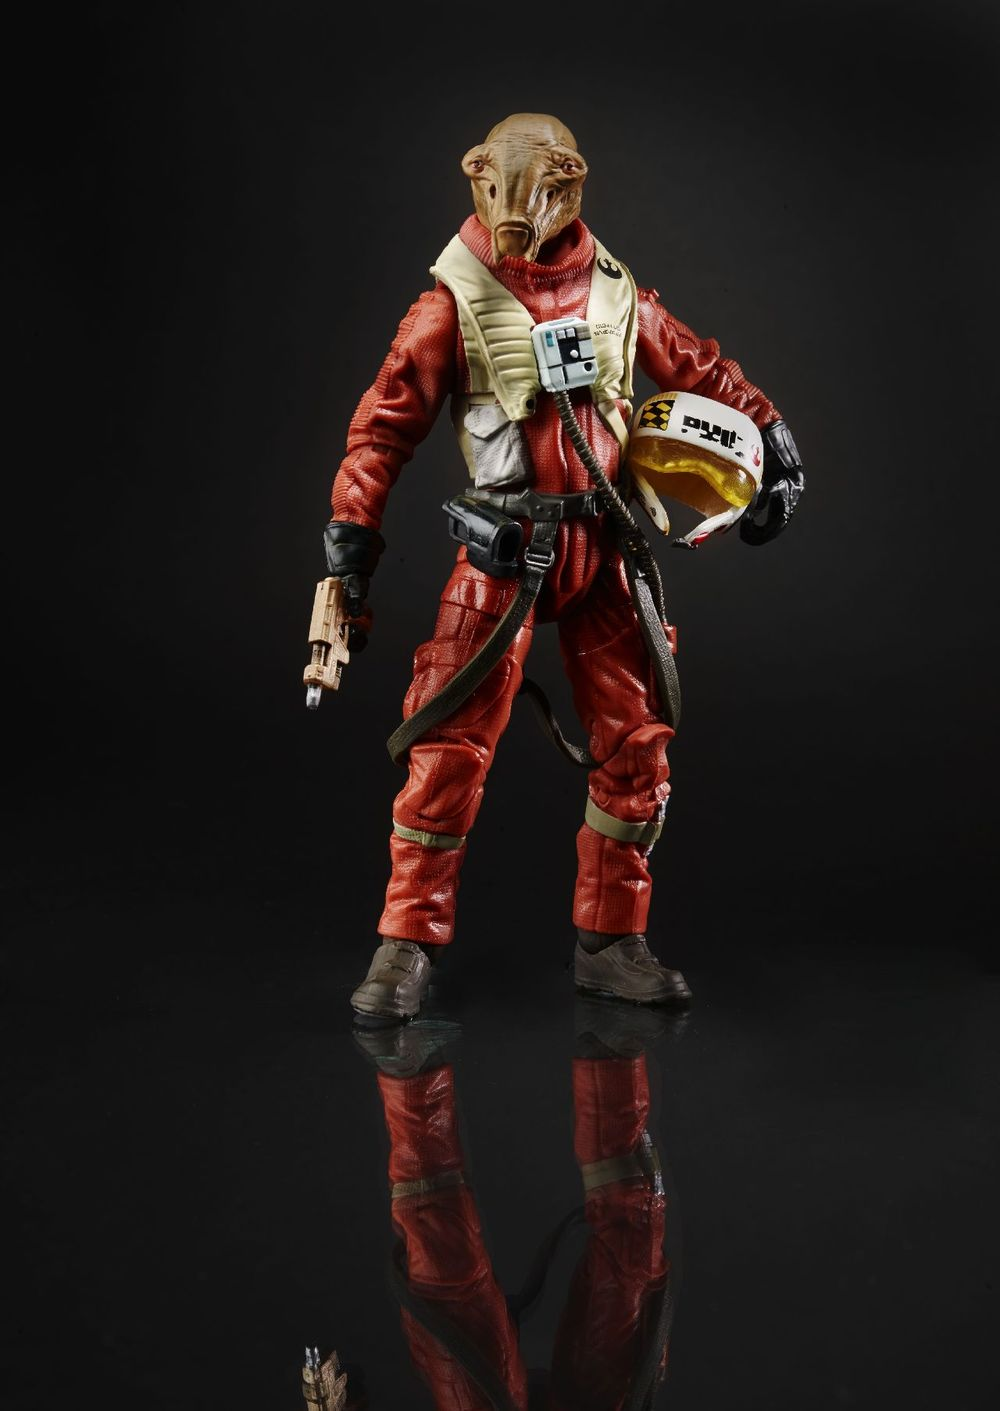 new-star-wars-the-force-awakens-action-figures-revealed-including-han-solo3